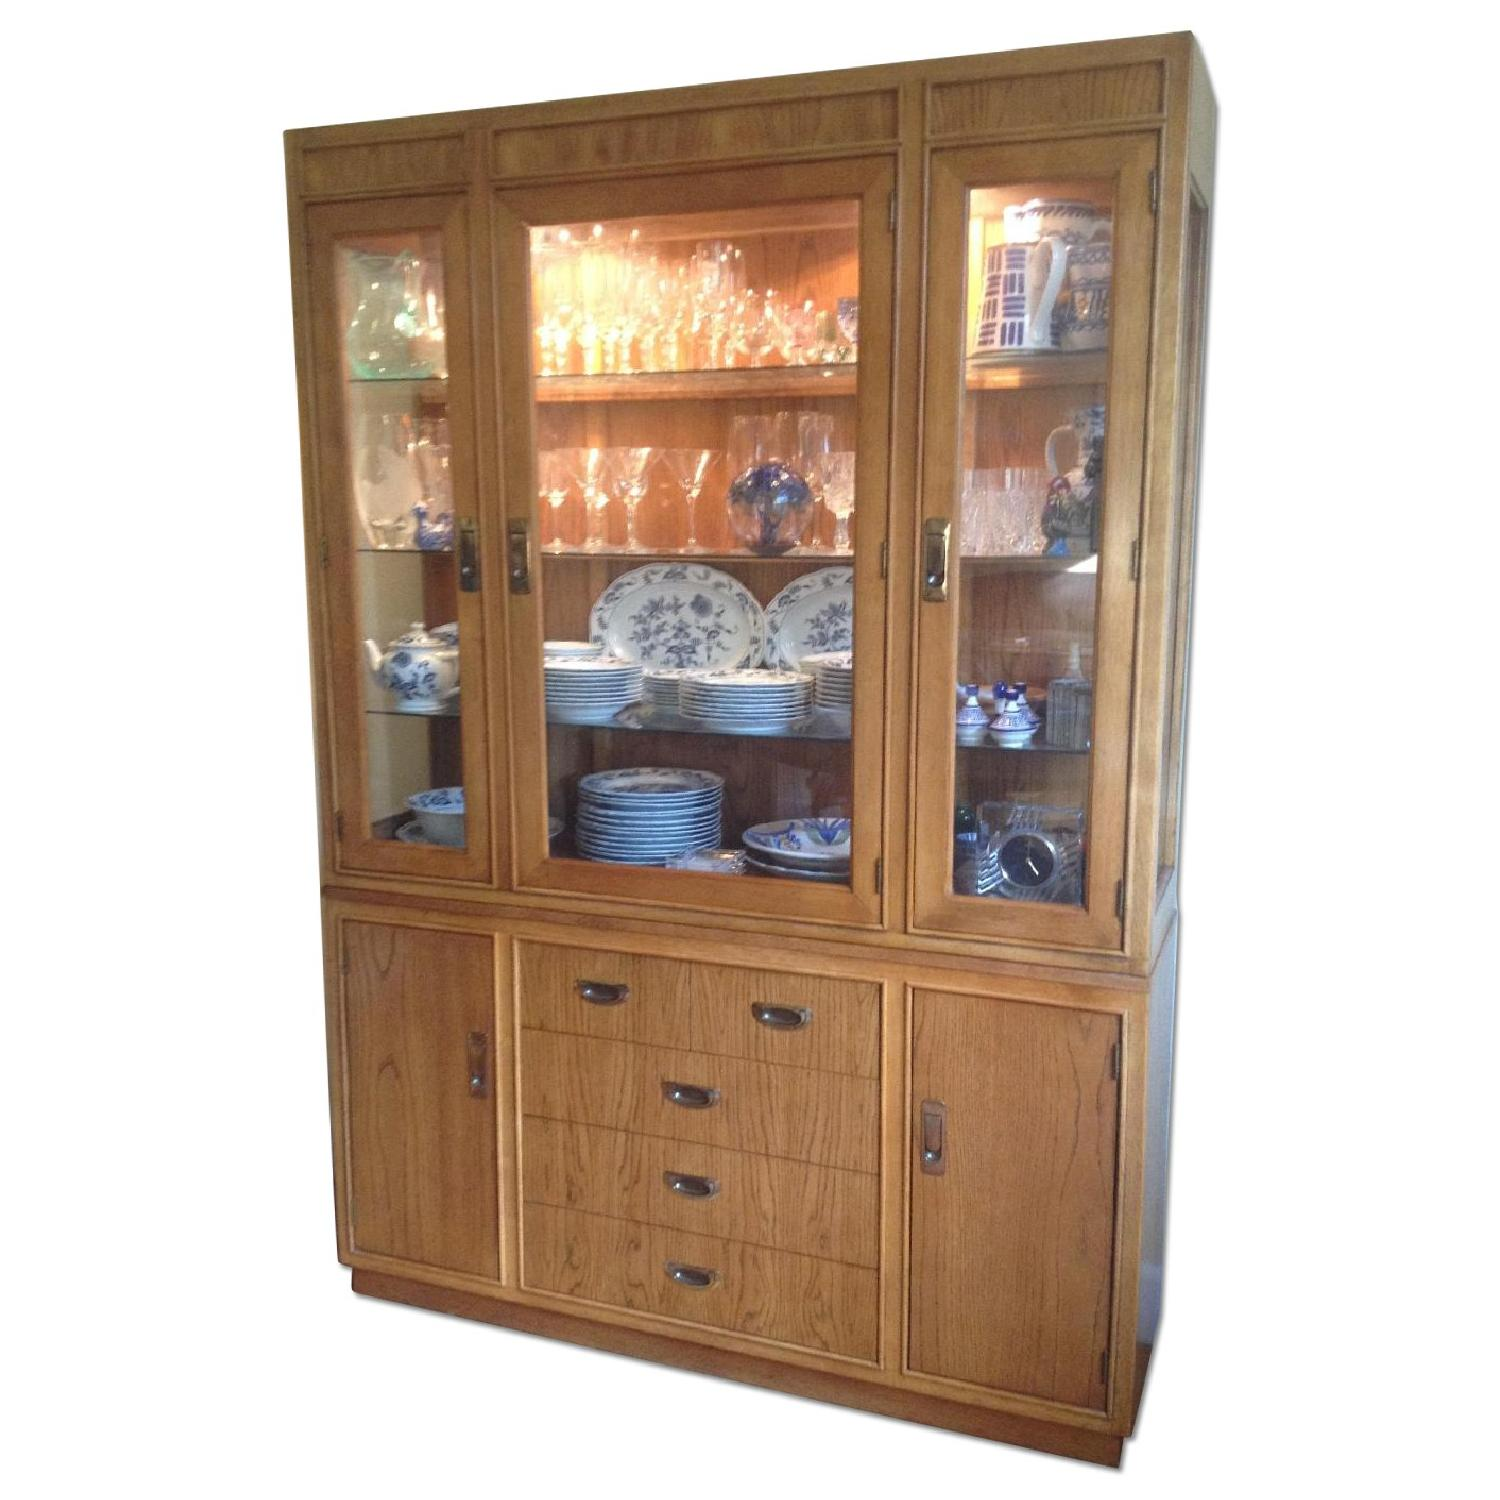 Used sideboards  credenzas for sale in NYC  AptDeco